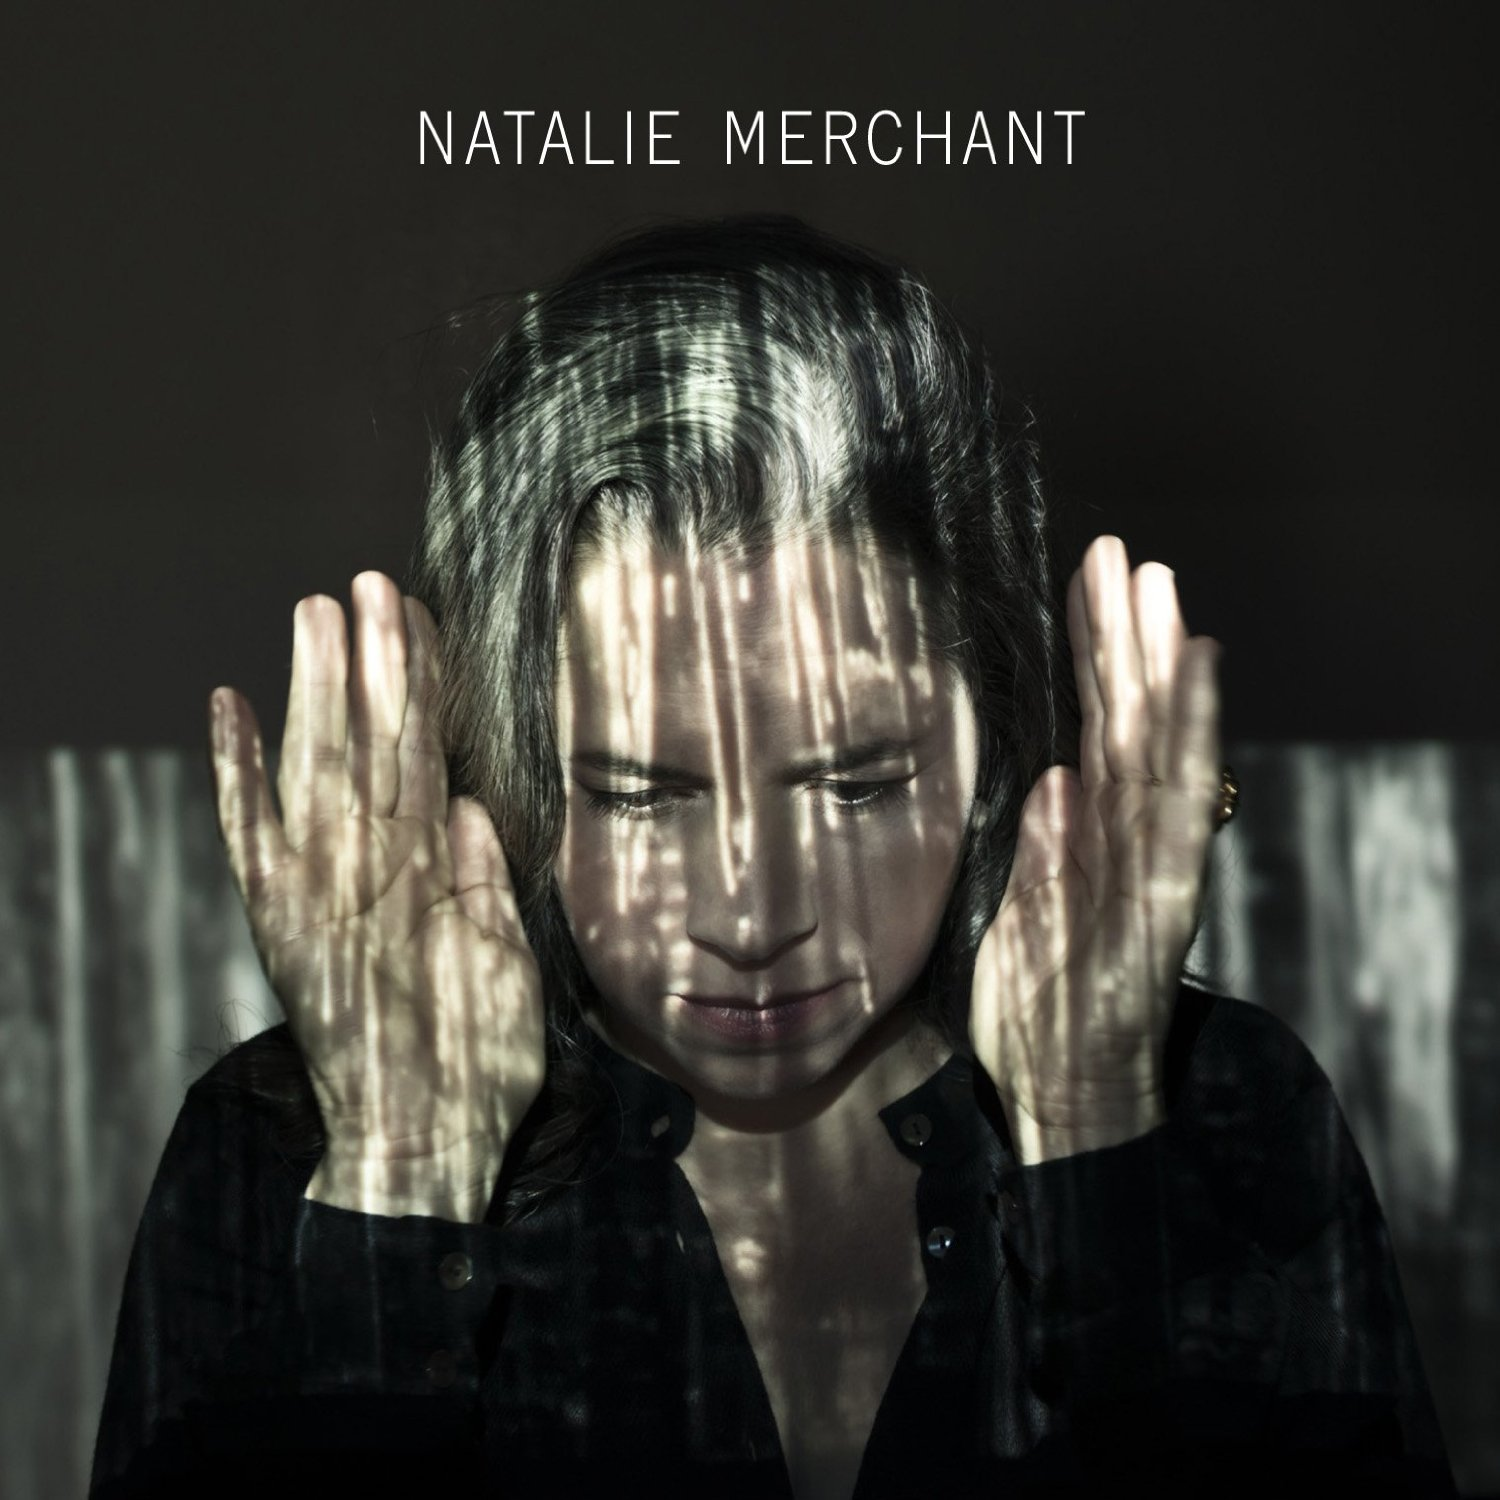 Natalie Merchant album art